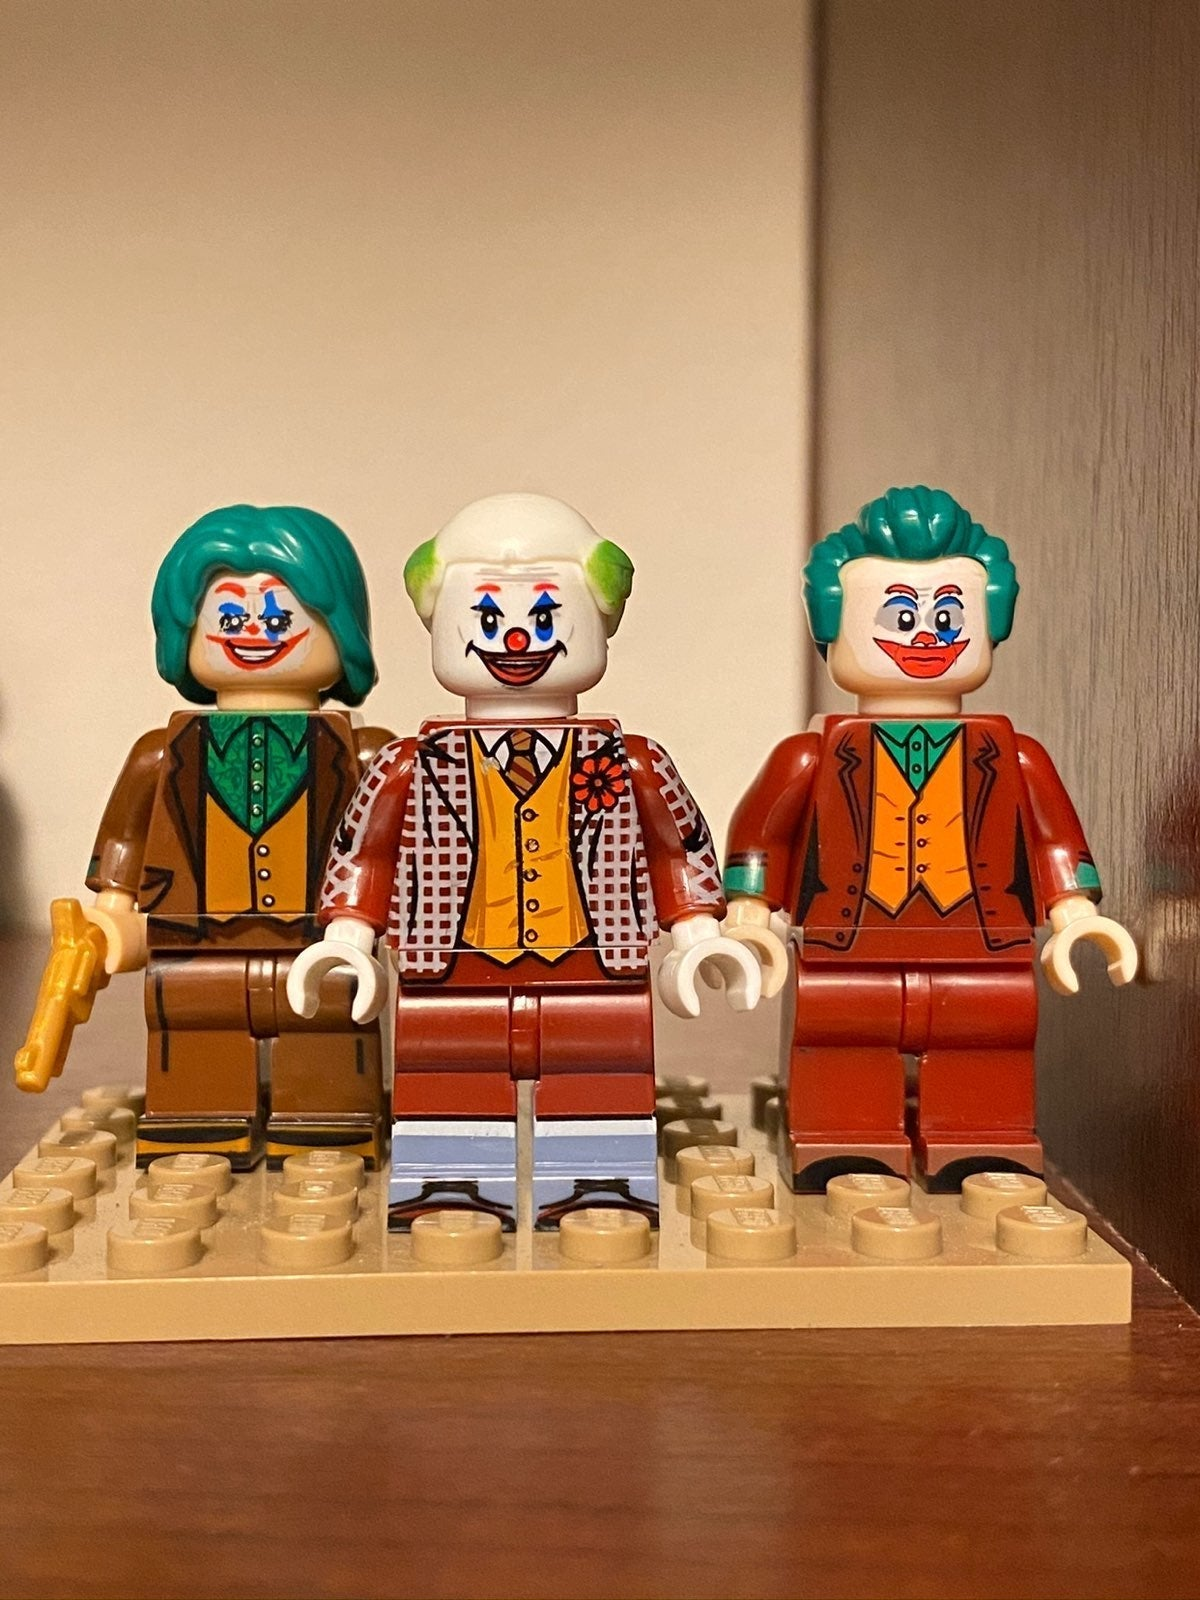 The Joker movie inspired custom minifigs